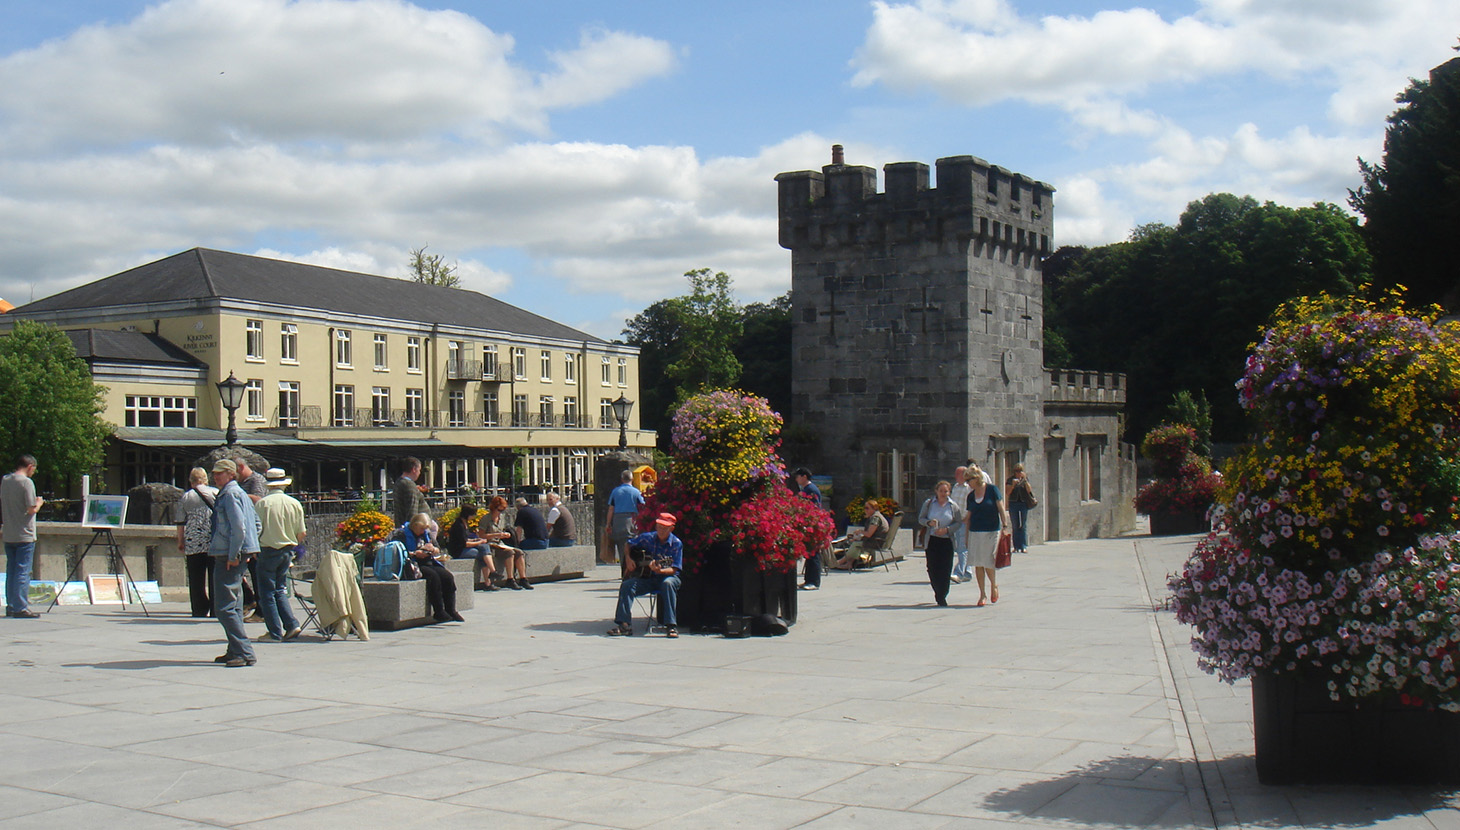 Canal_Square_Kilkenny1460